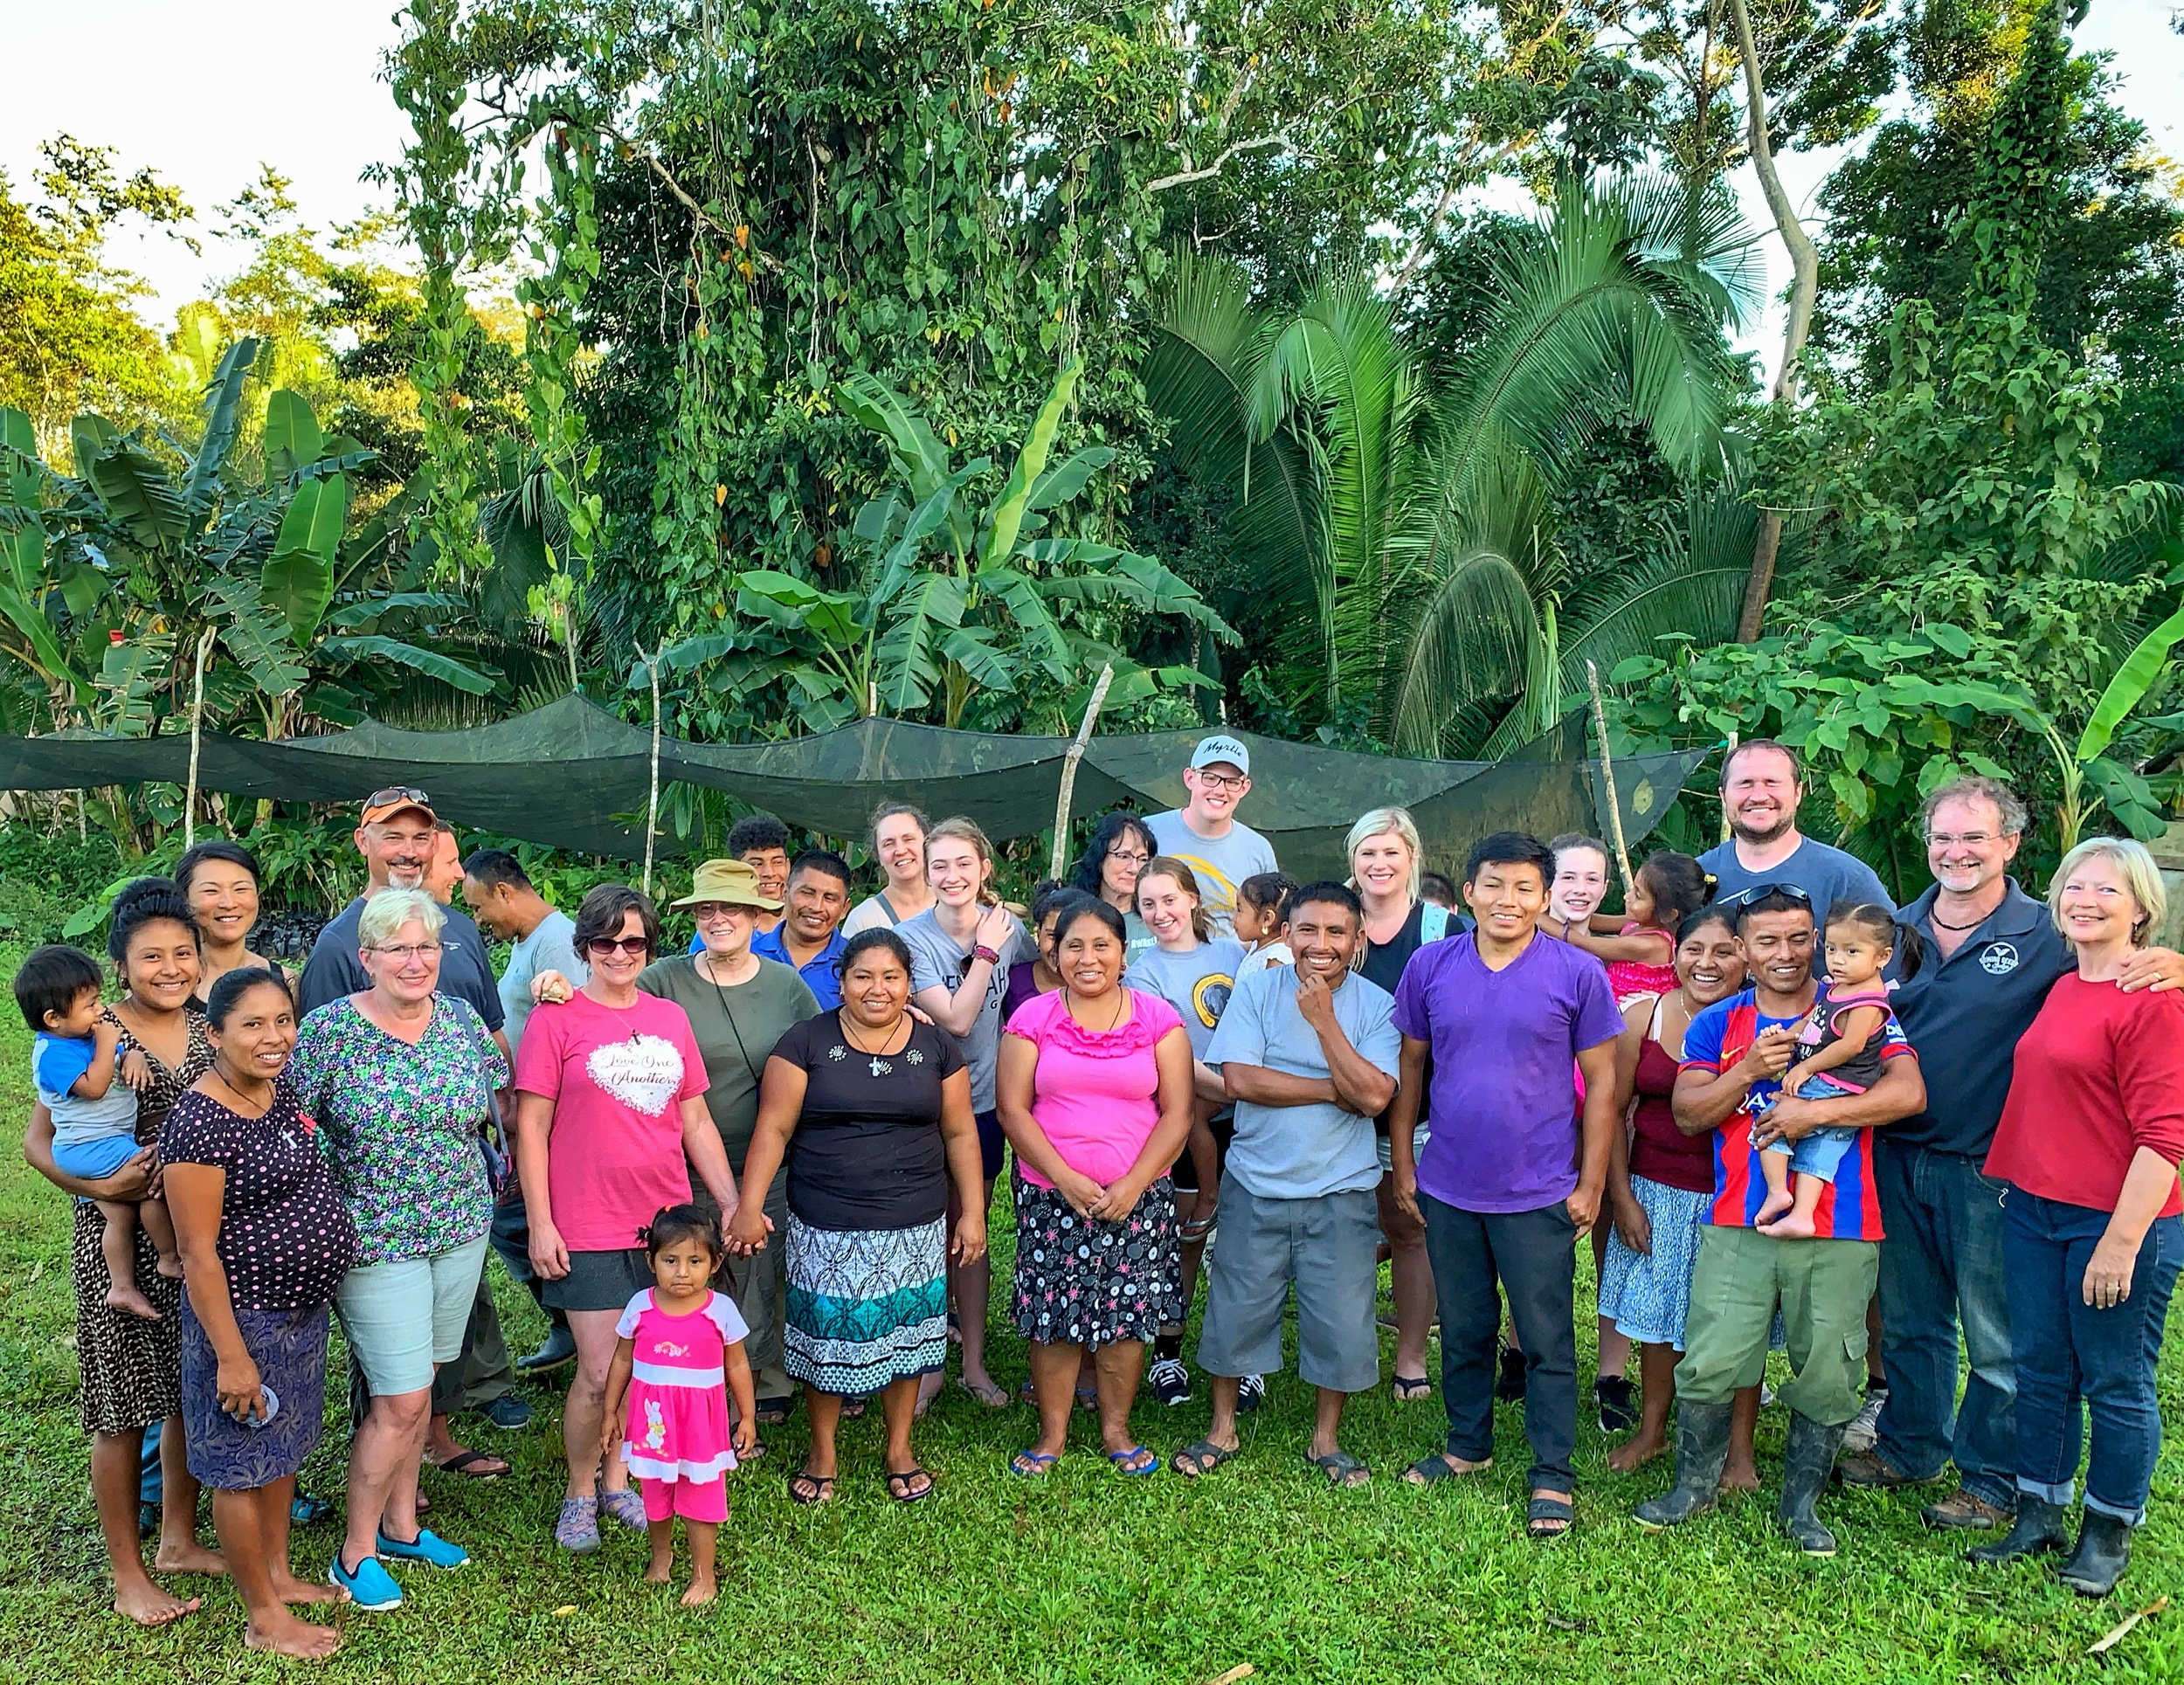 Be Our Partner! - Be part of this exciting mission that is helping change lives in remote villages. Share your expertise and skills - here or there, be a prayer warrior or donate financially so that our work can continue and expand to sow more seeds in Belize